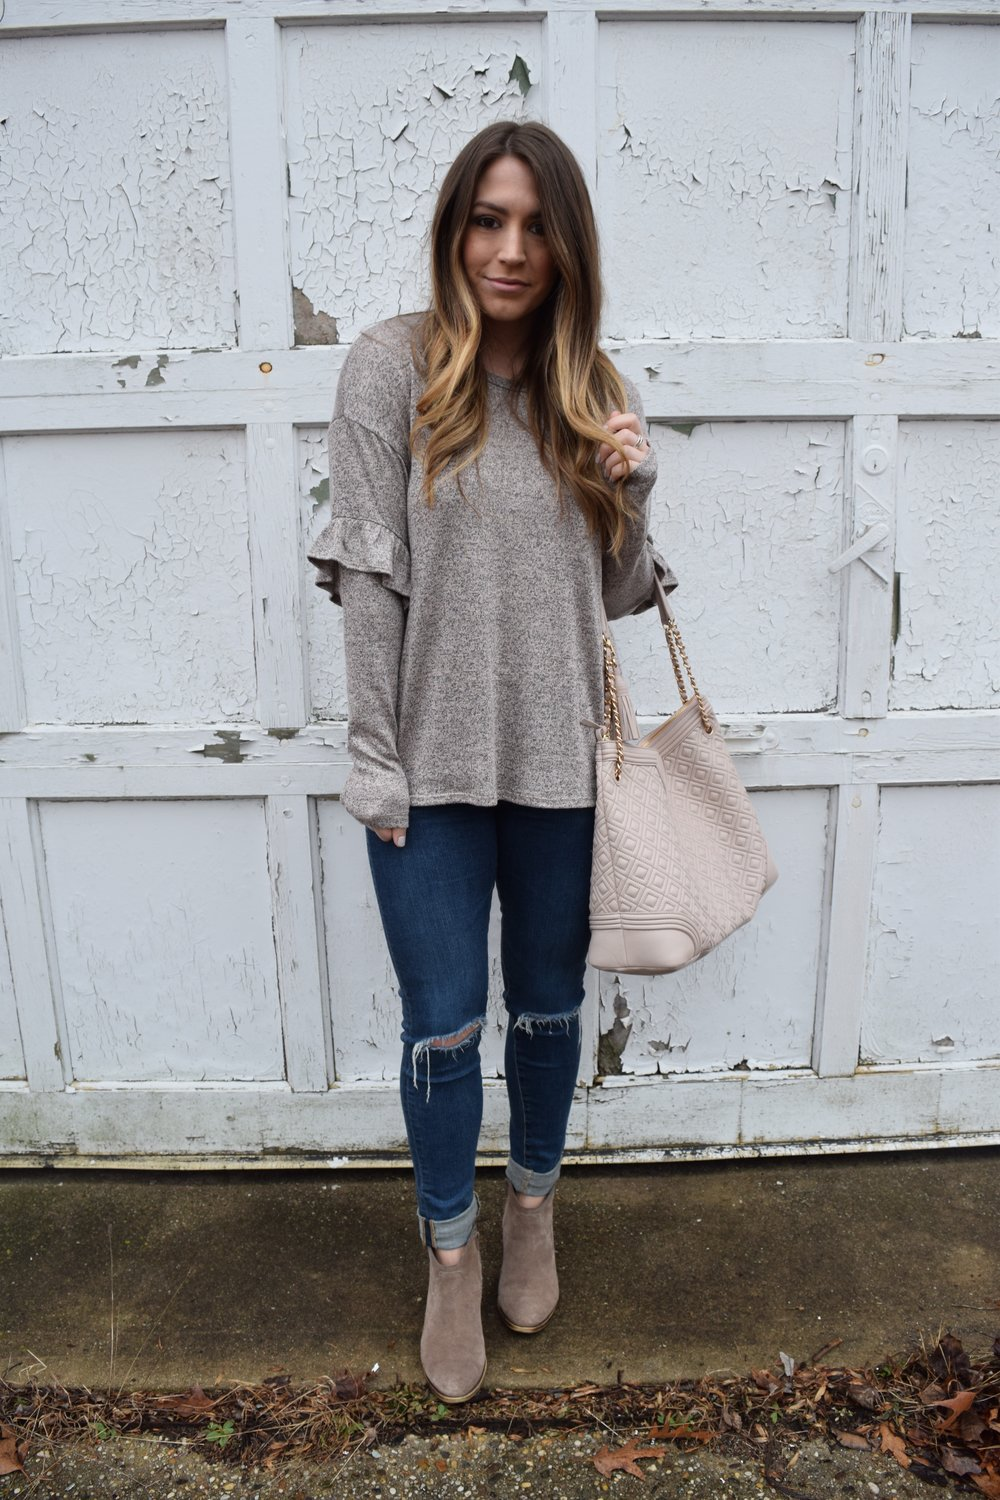 ruffle sleeves + distressed denim